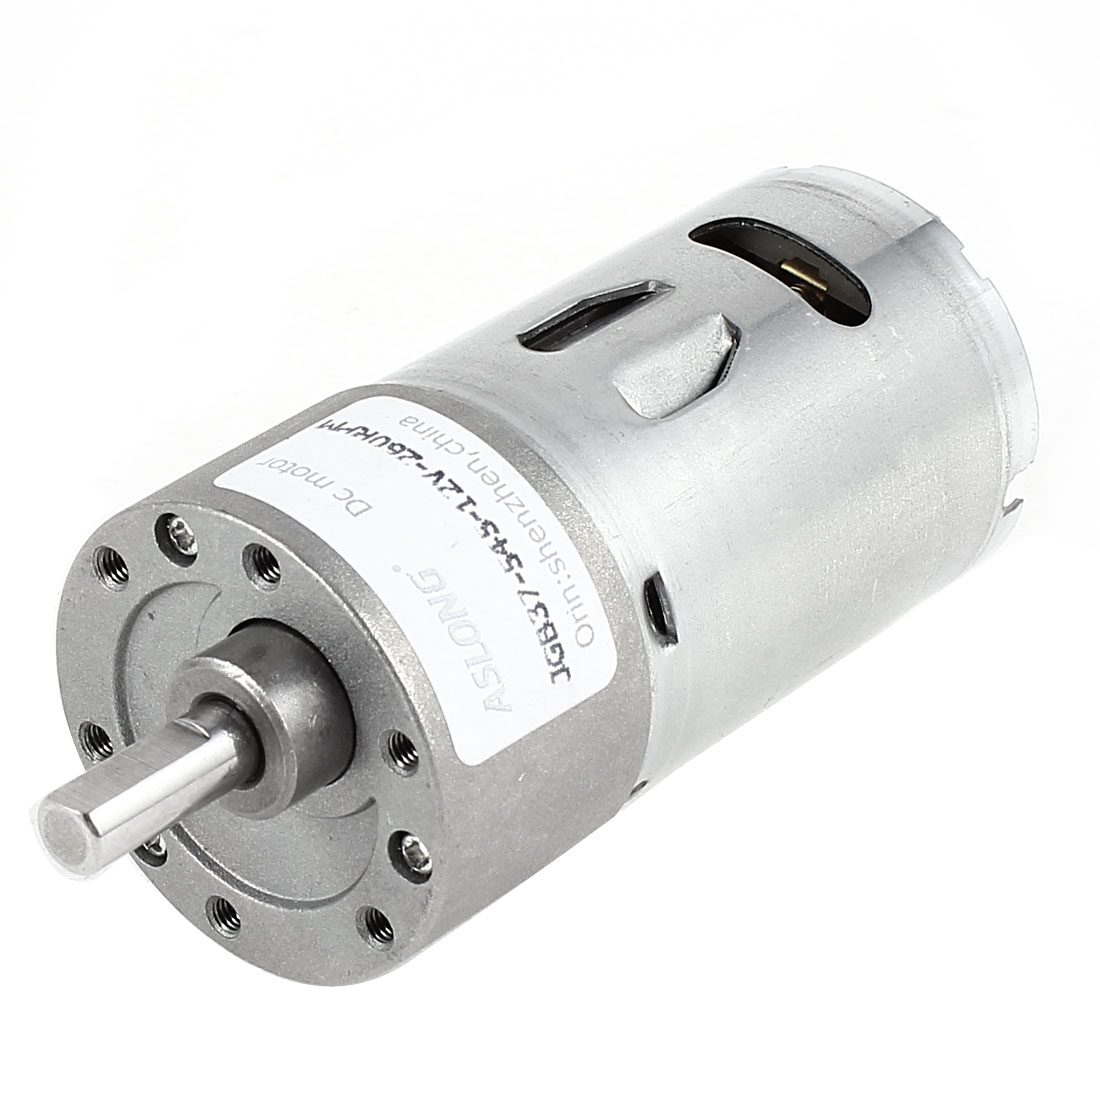 DC 12V 260RPM Metal Axle Electric Gearbox Geared Speed Reduction Micro Motor